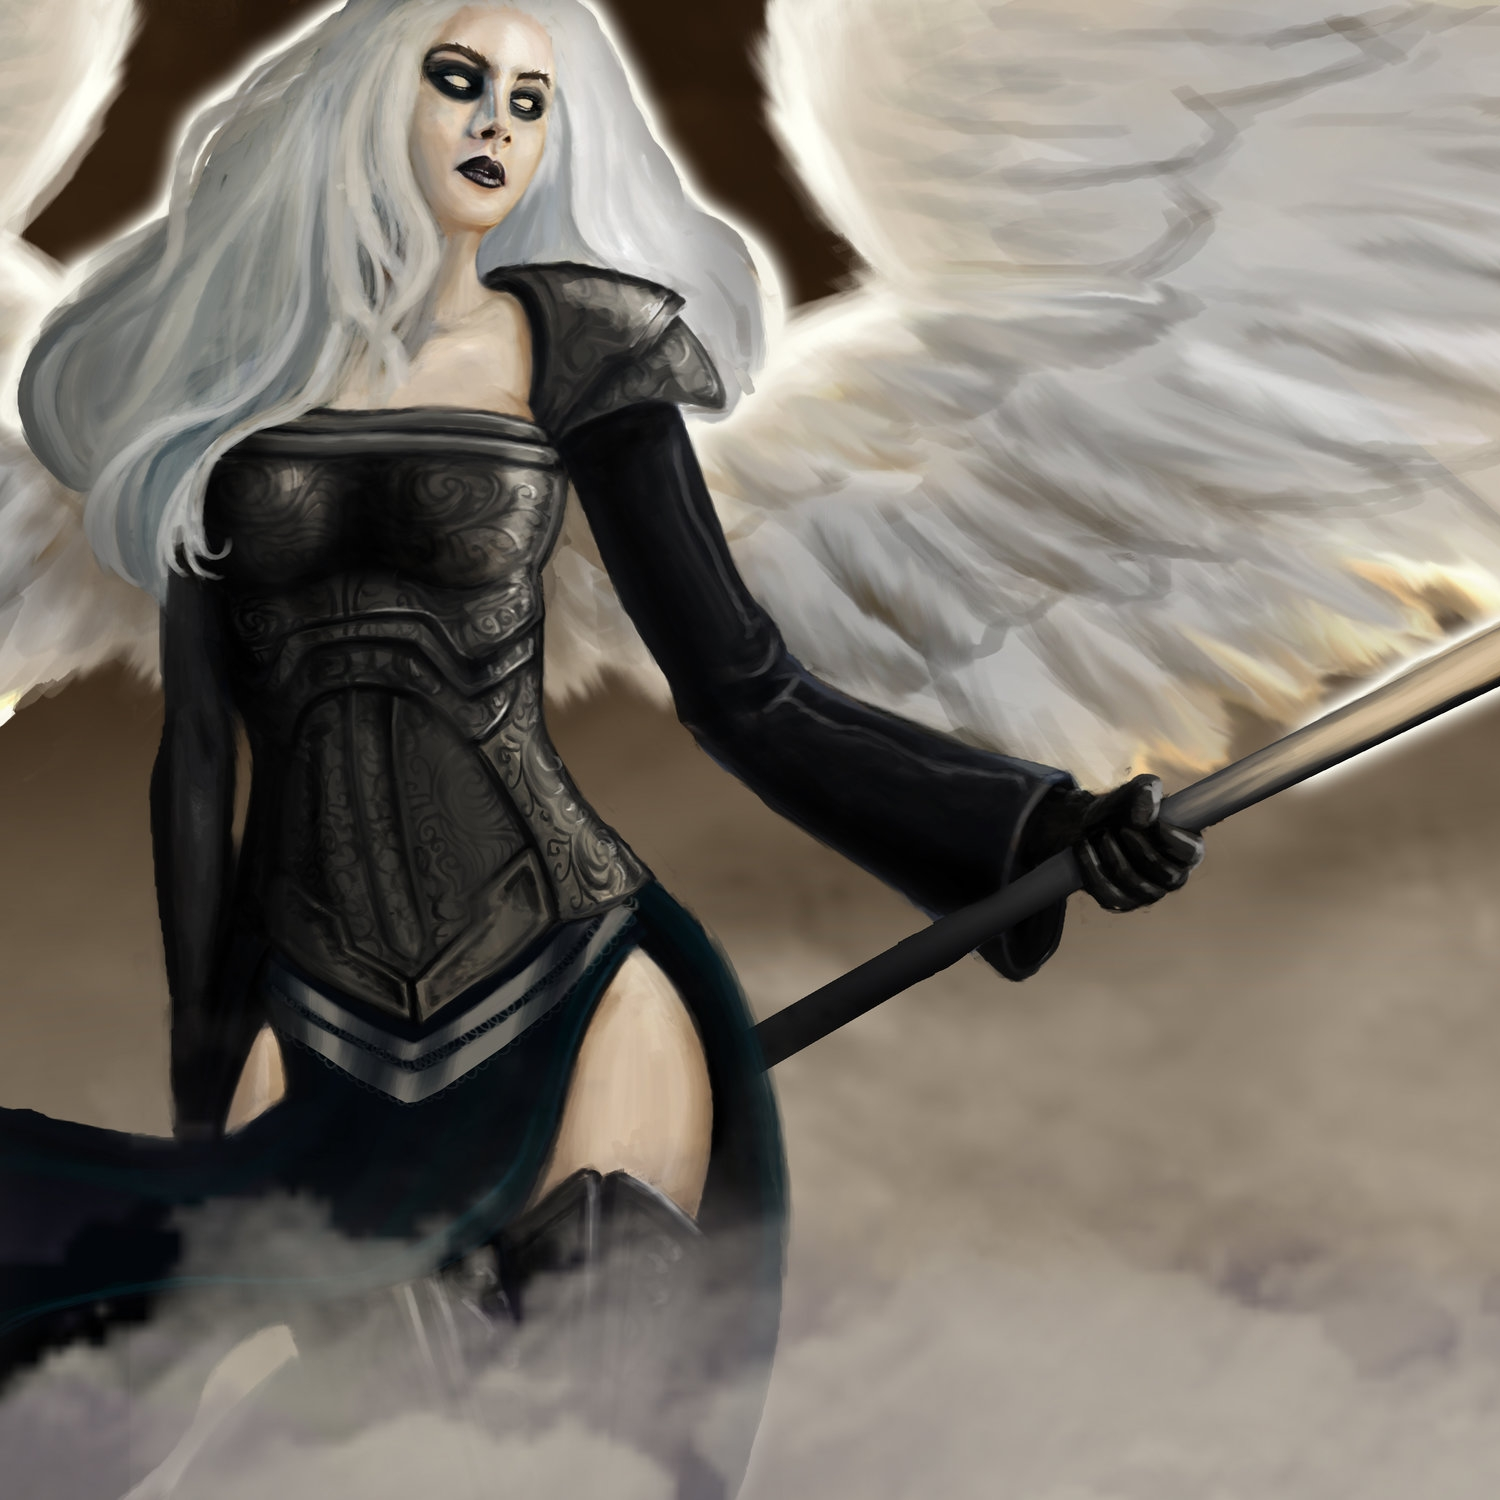 """Avacyn """"Is property of magic the gathering"""""""